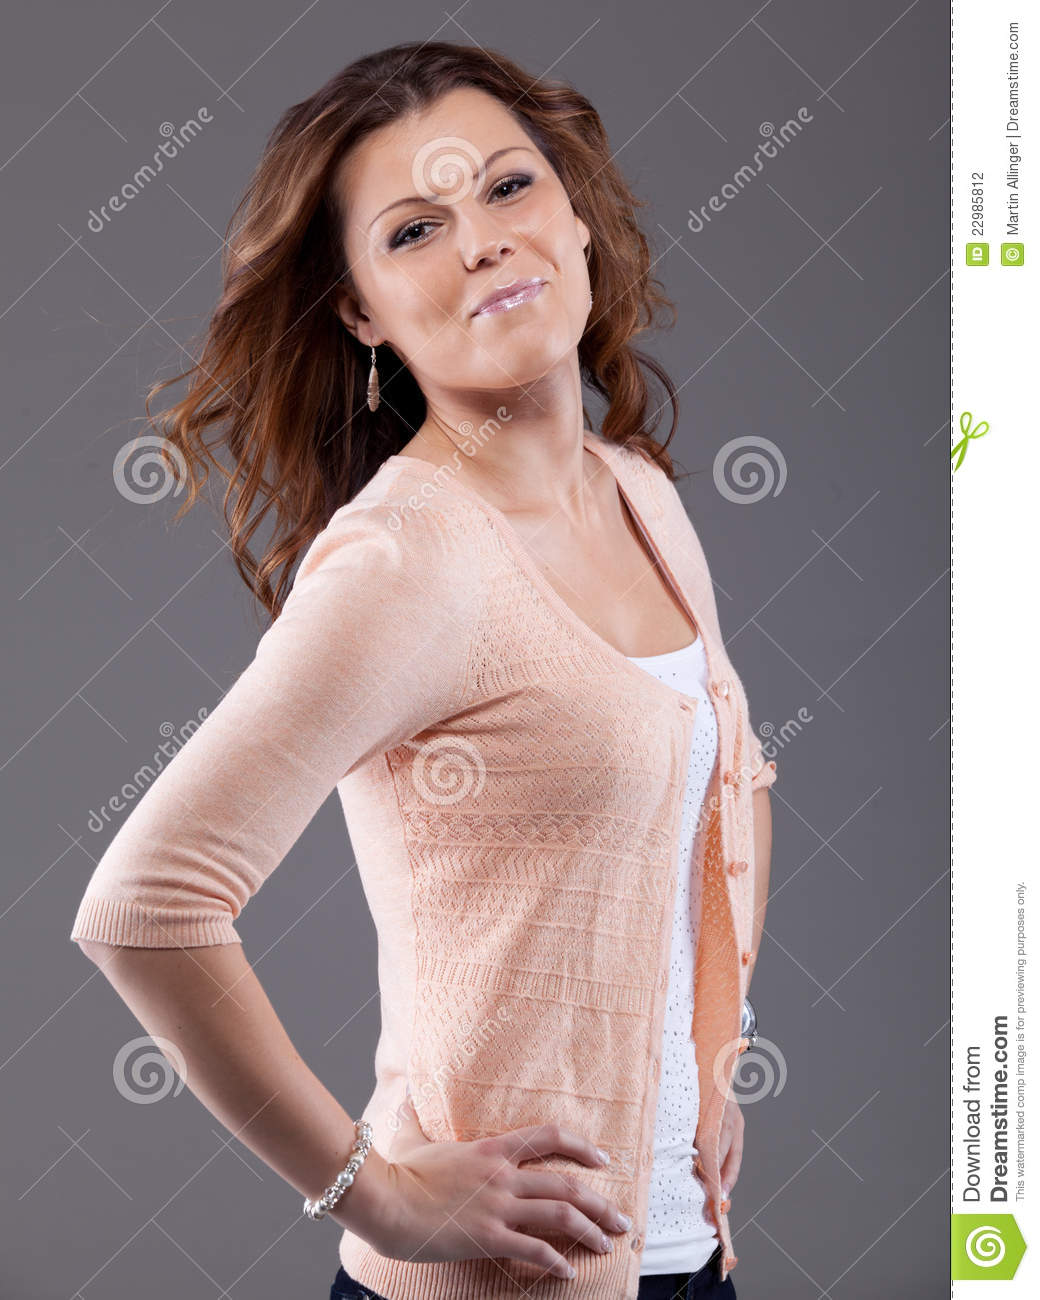 Looking Good - Very Atractive Young Woman Stock Photo